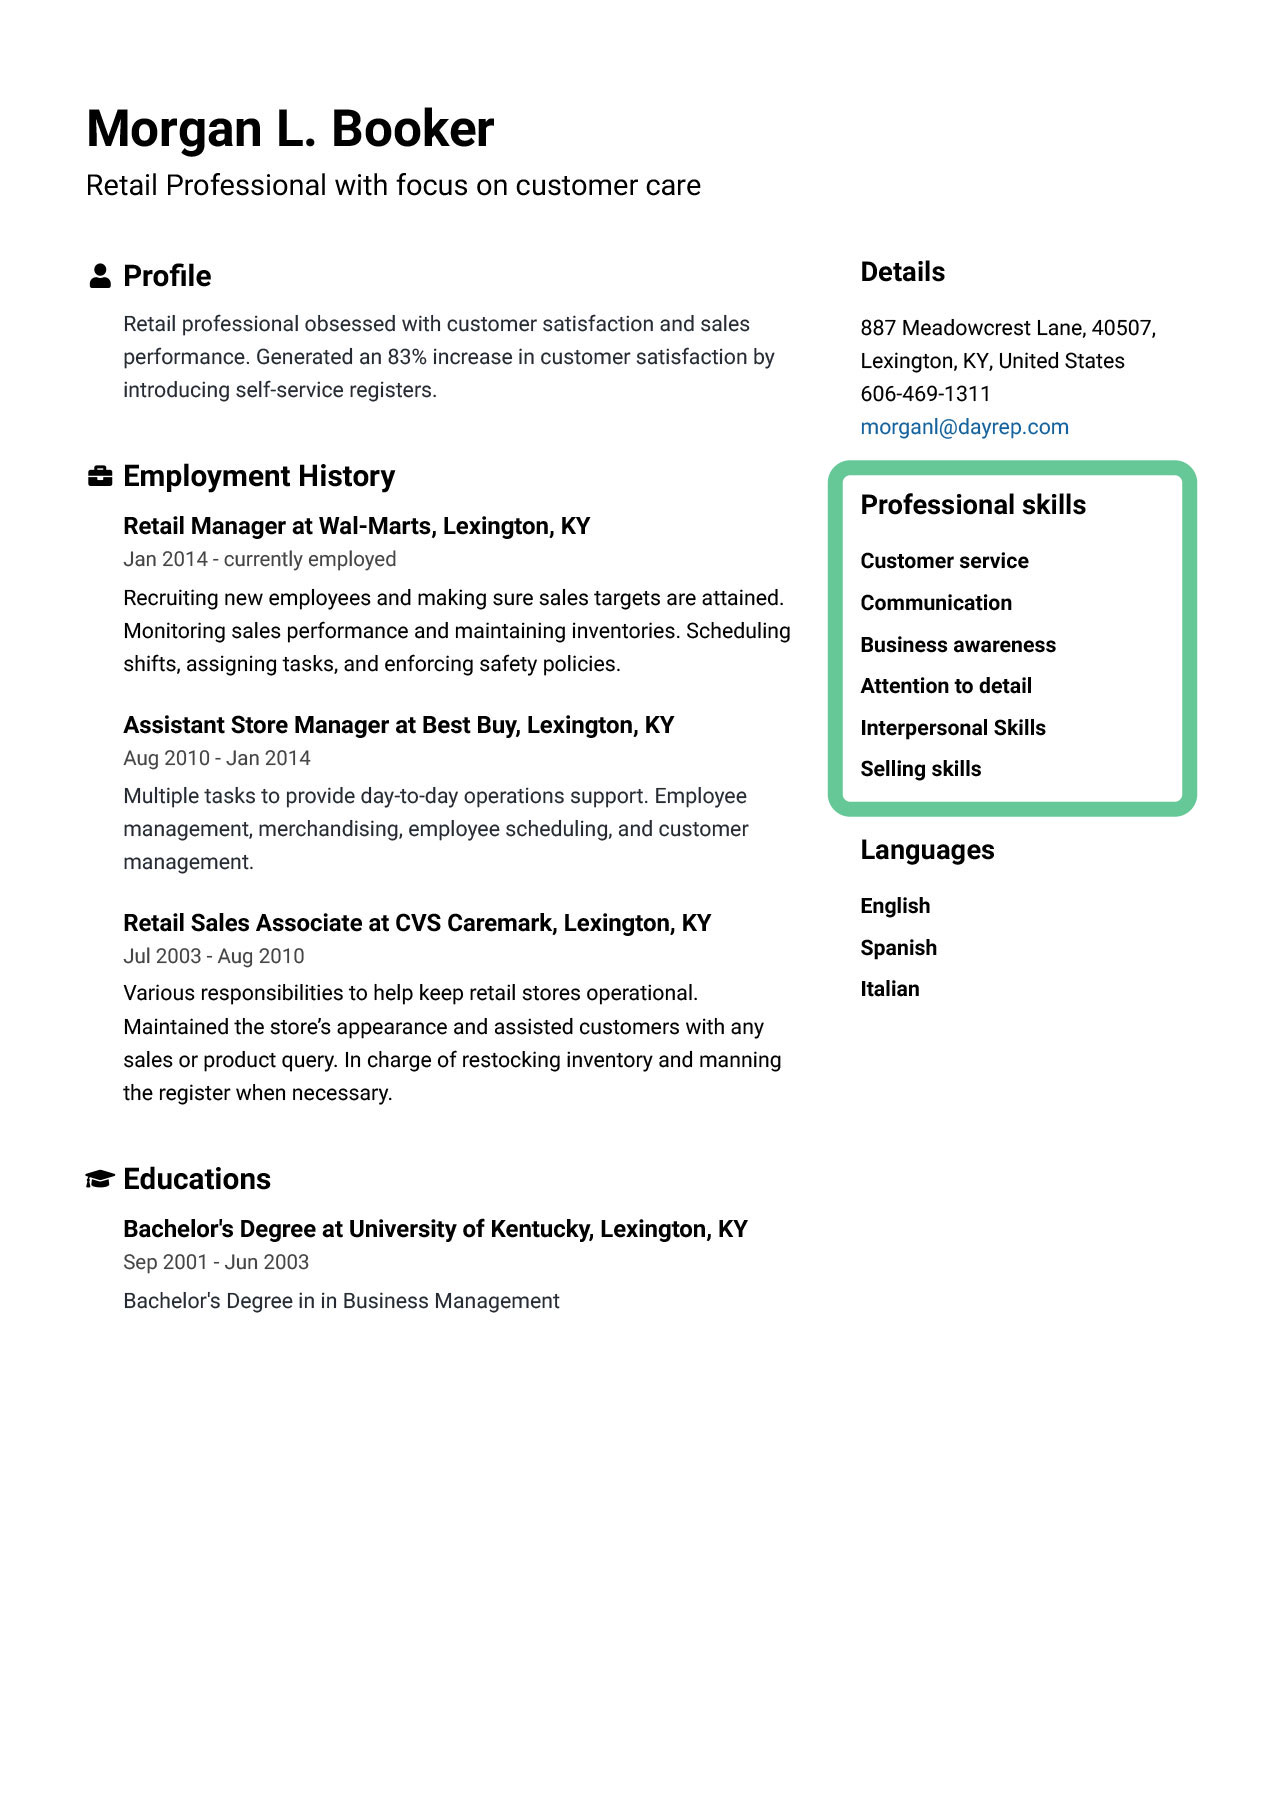 skills for resume best of examples to jofibo on customer service right side highlighted Resume Skills To List On Resume For Customer Service